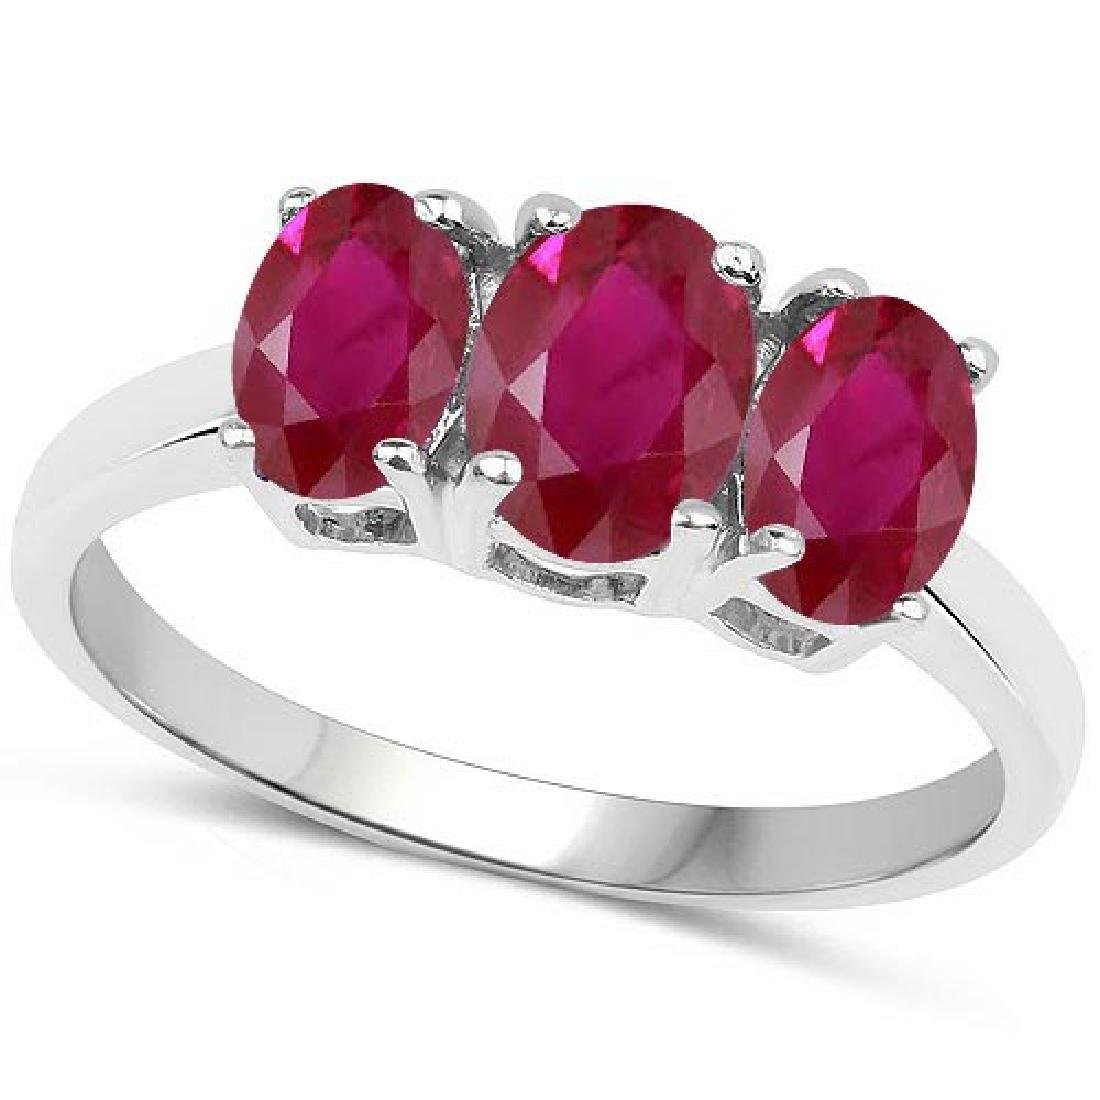 Certified 4.30 CTW Genuine Ruby And 14K White Gold Ring